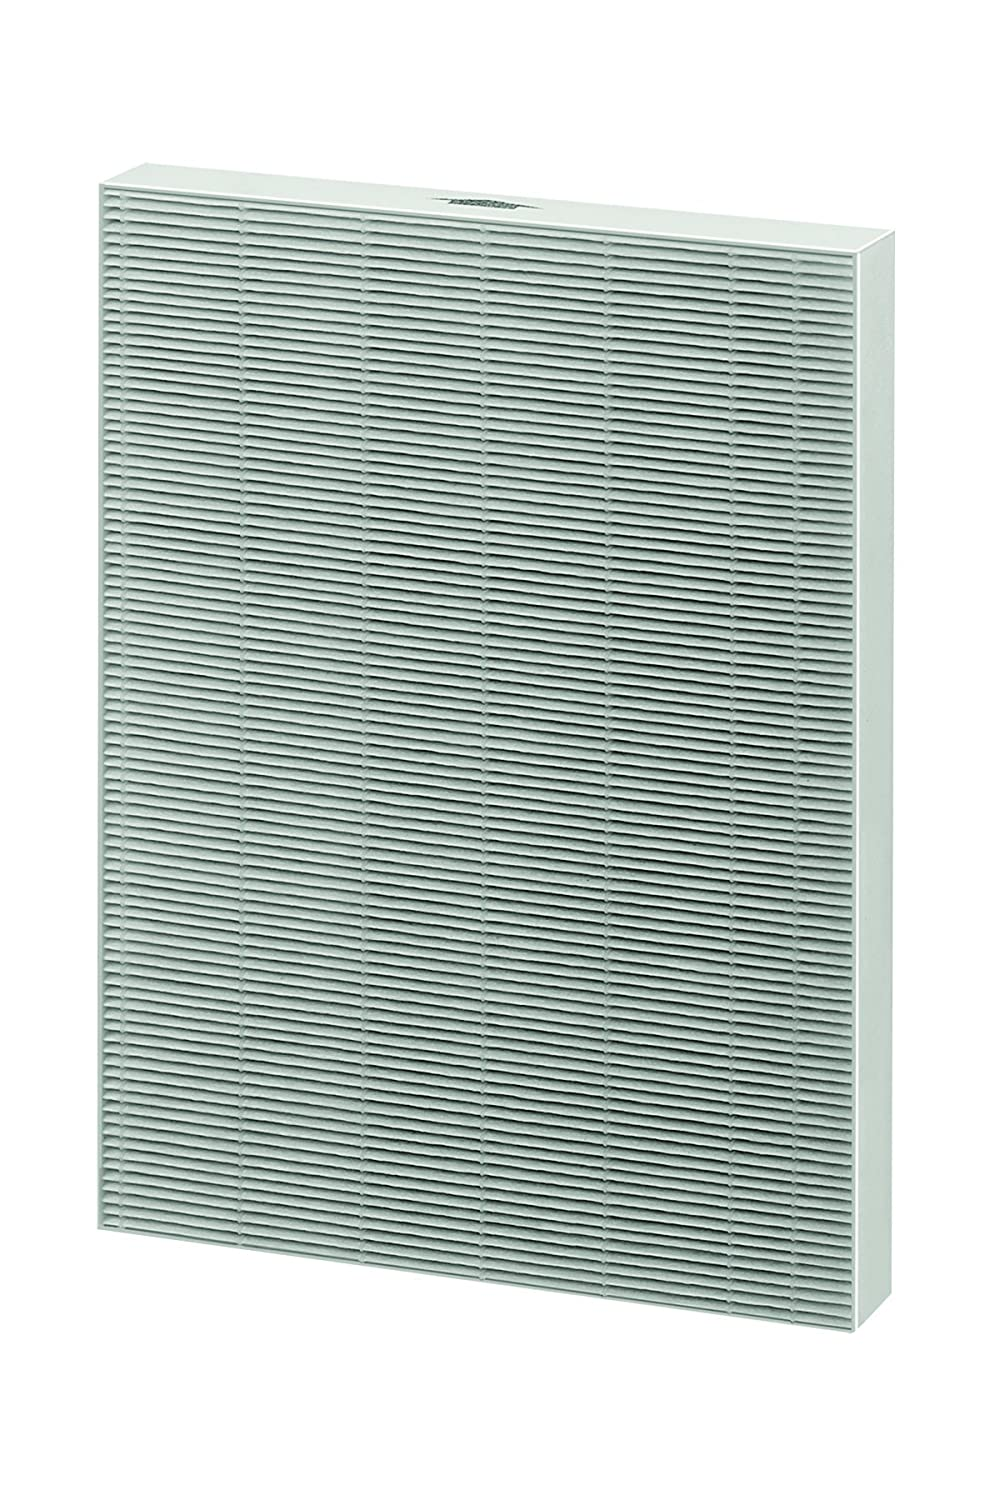 Fellowes True HEPA Filter Large [for 300 Air Purifier] Ref 9370101 CRC93701